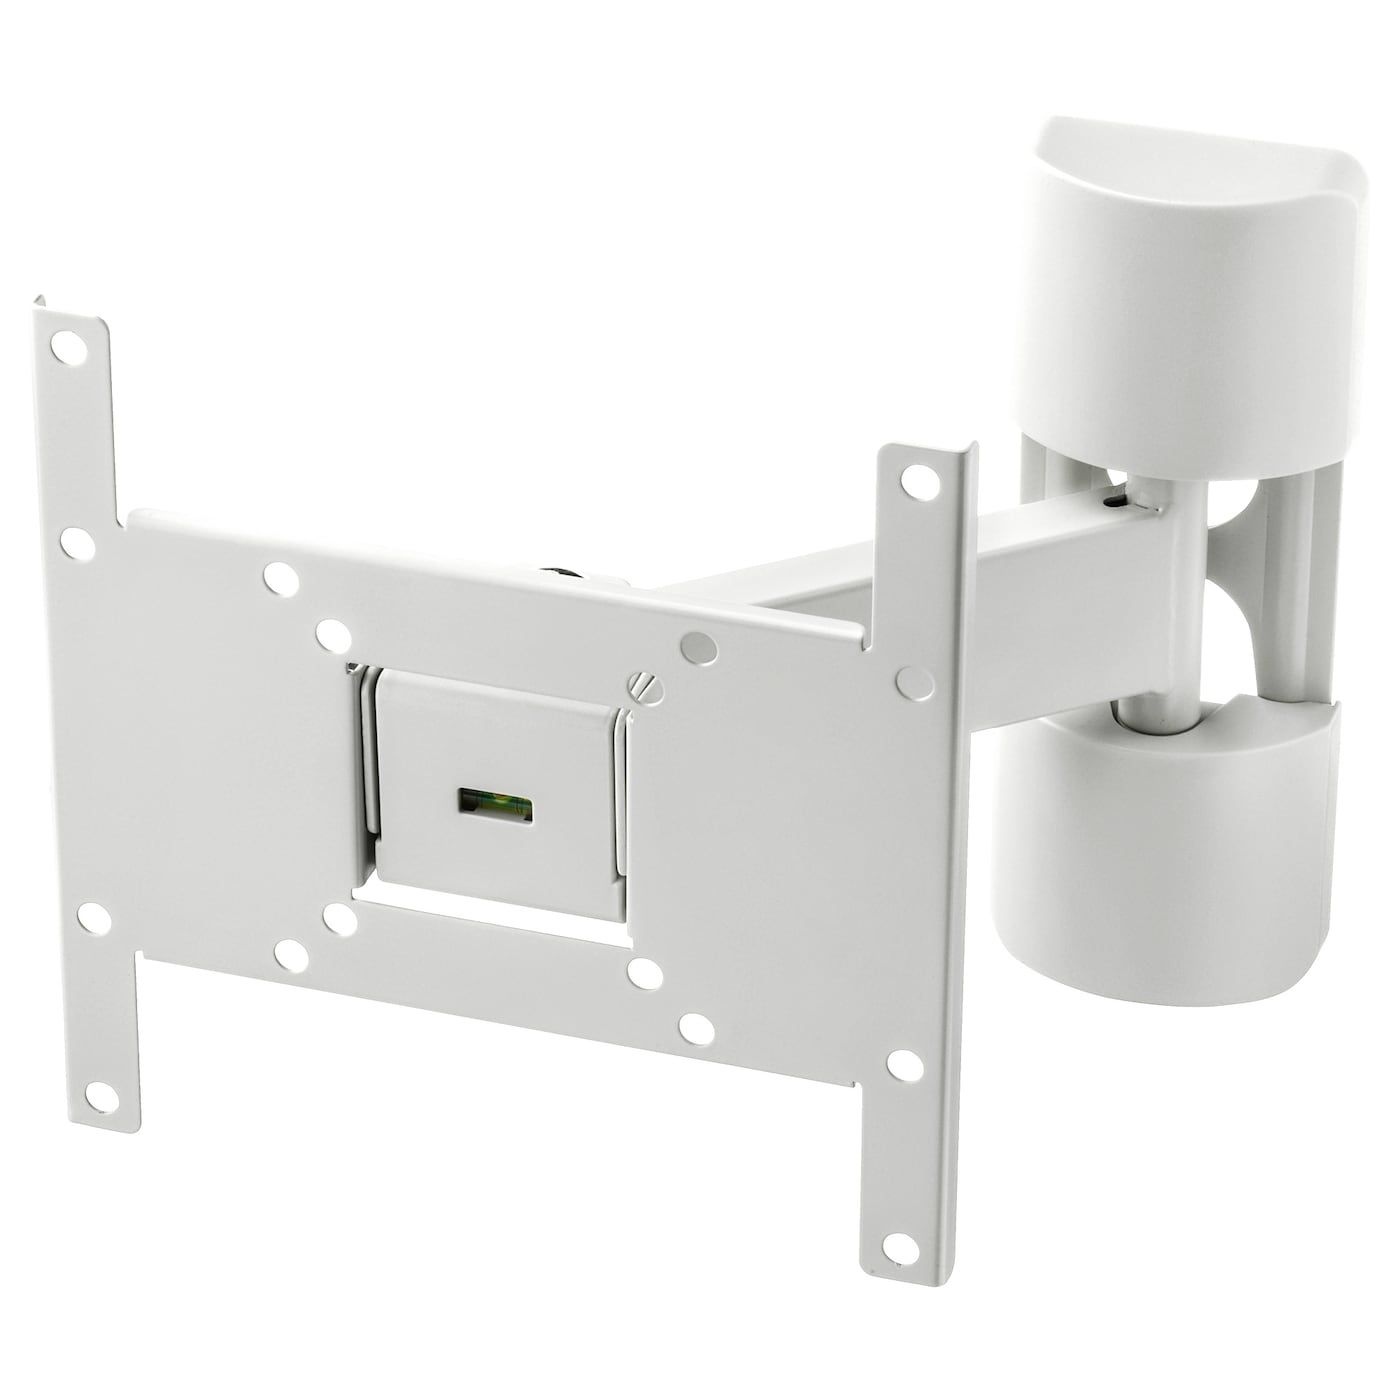 Uppleva Wall Bracket For Tv Tilt Swivel 19 43 In 2020 Tv Wall Brackets Wall Brackets Ikea